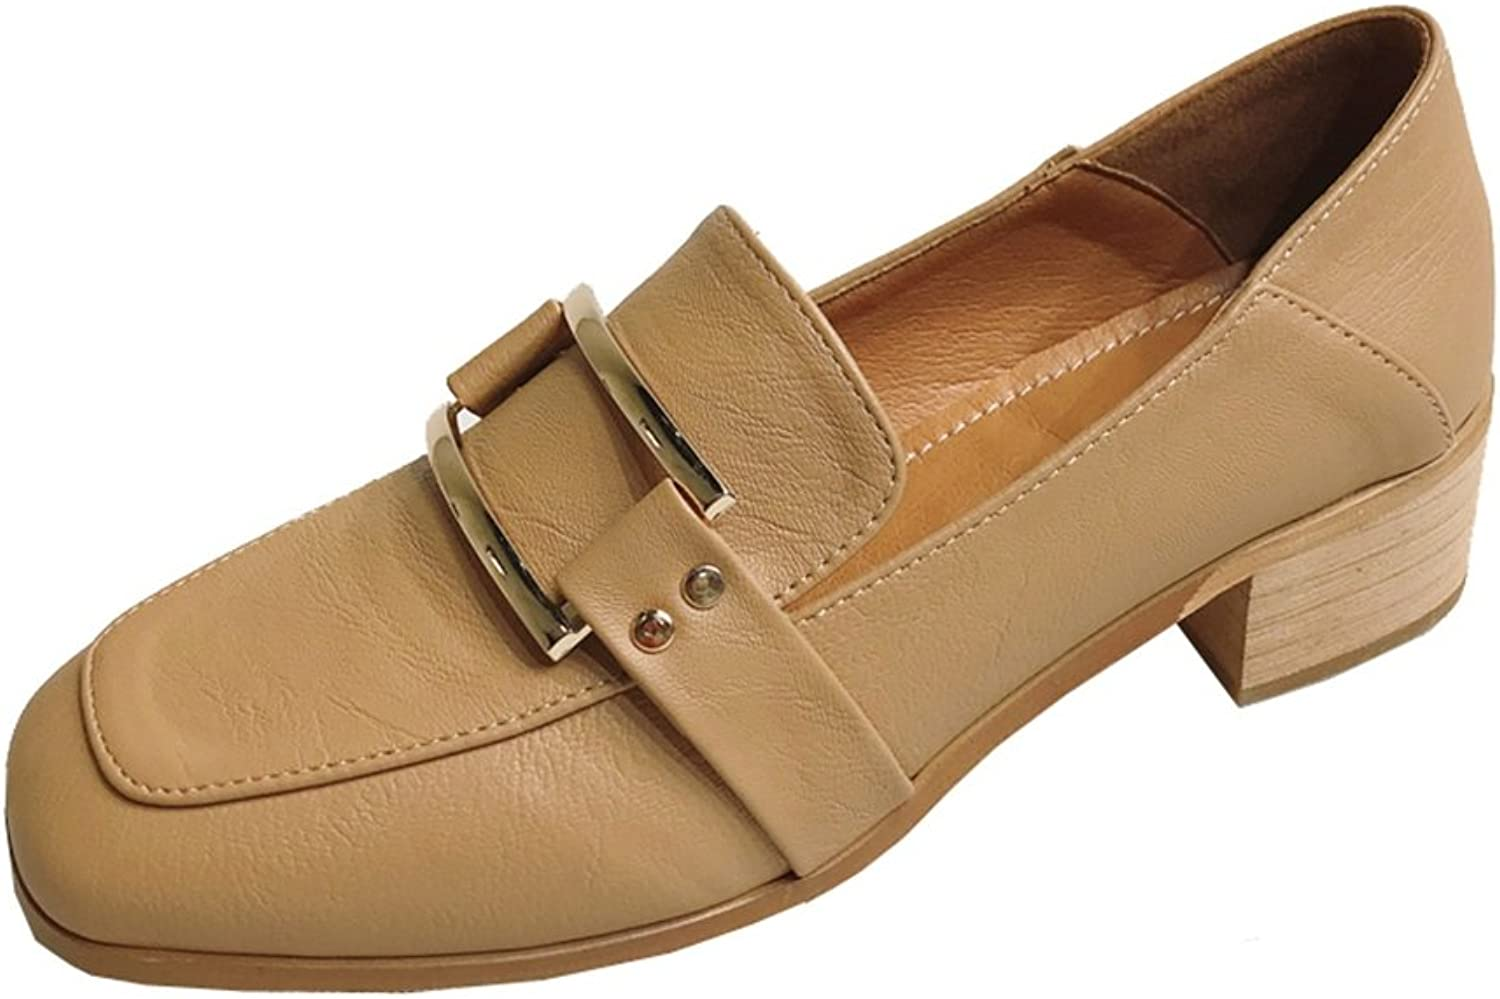 T-JULY Women's Metal Square Loafers with Rough High-Heeled British Style shoes